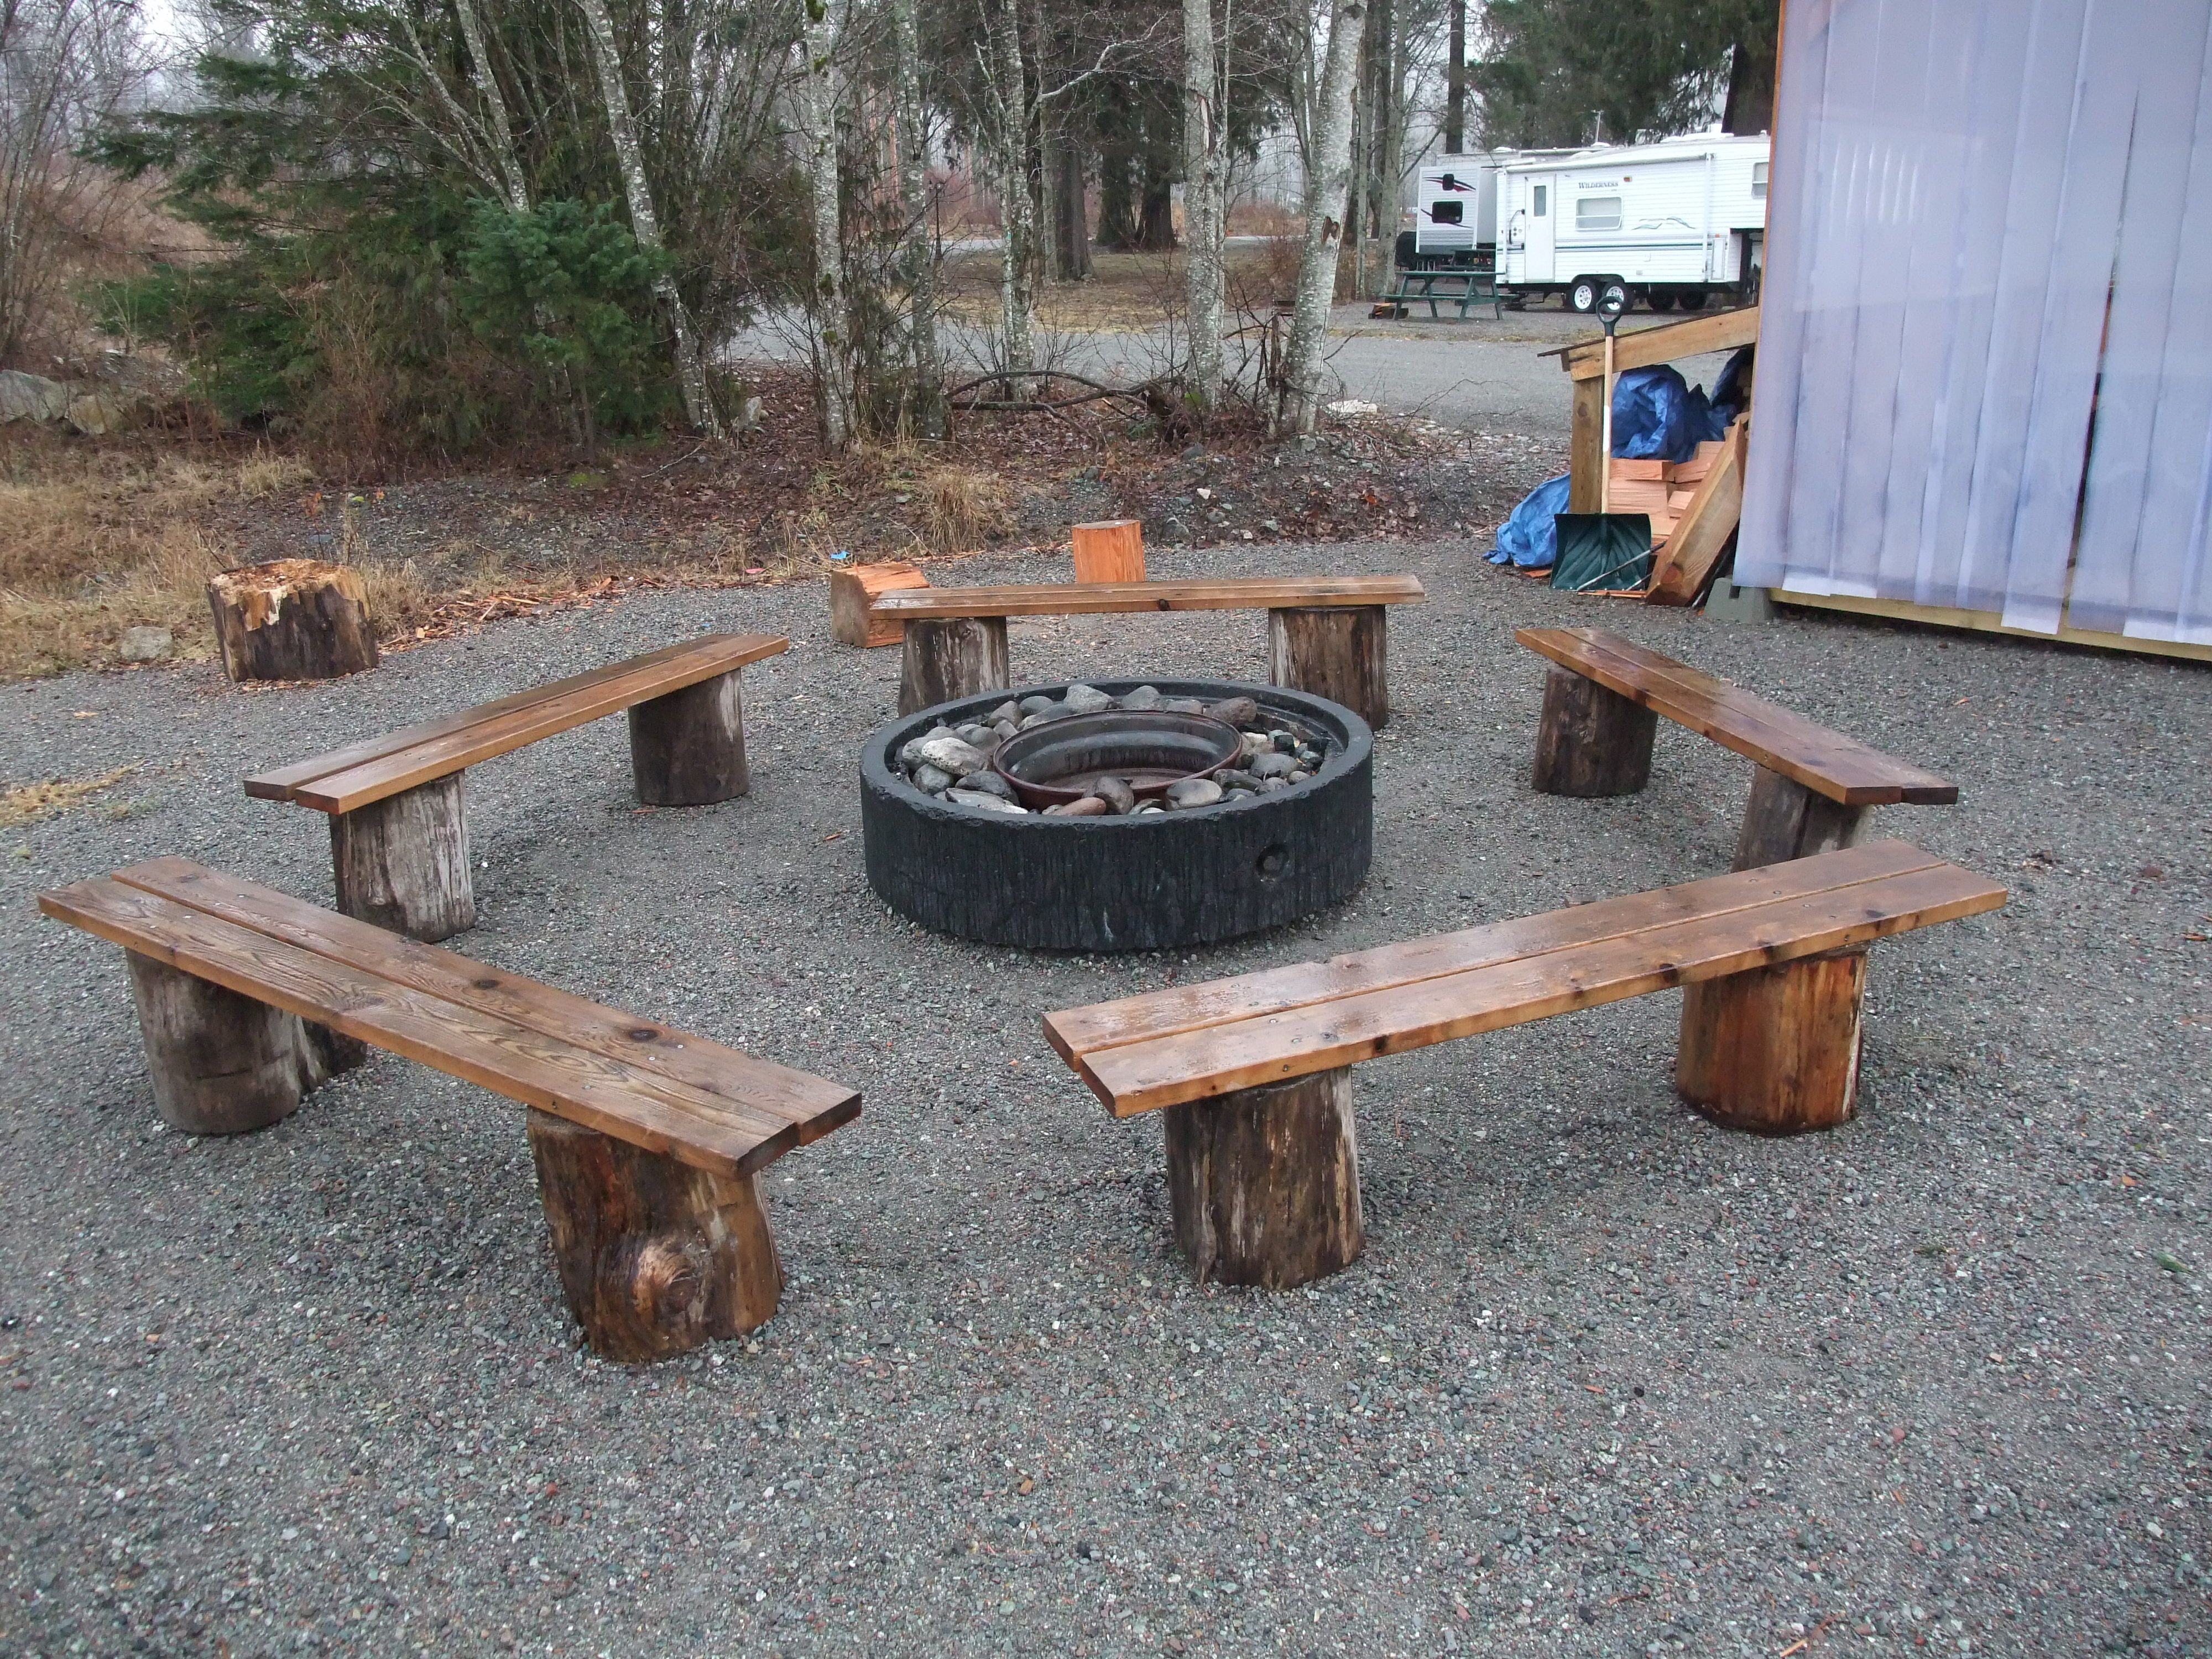 I Like The Fire Pit Benches My Firepit Is Made Of Stones Rustic